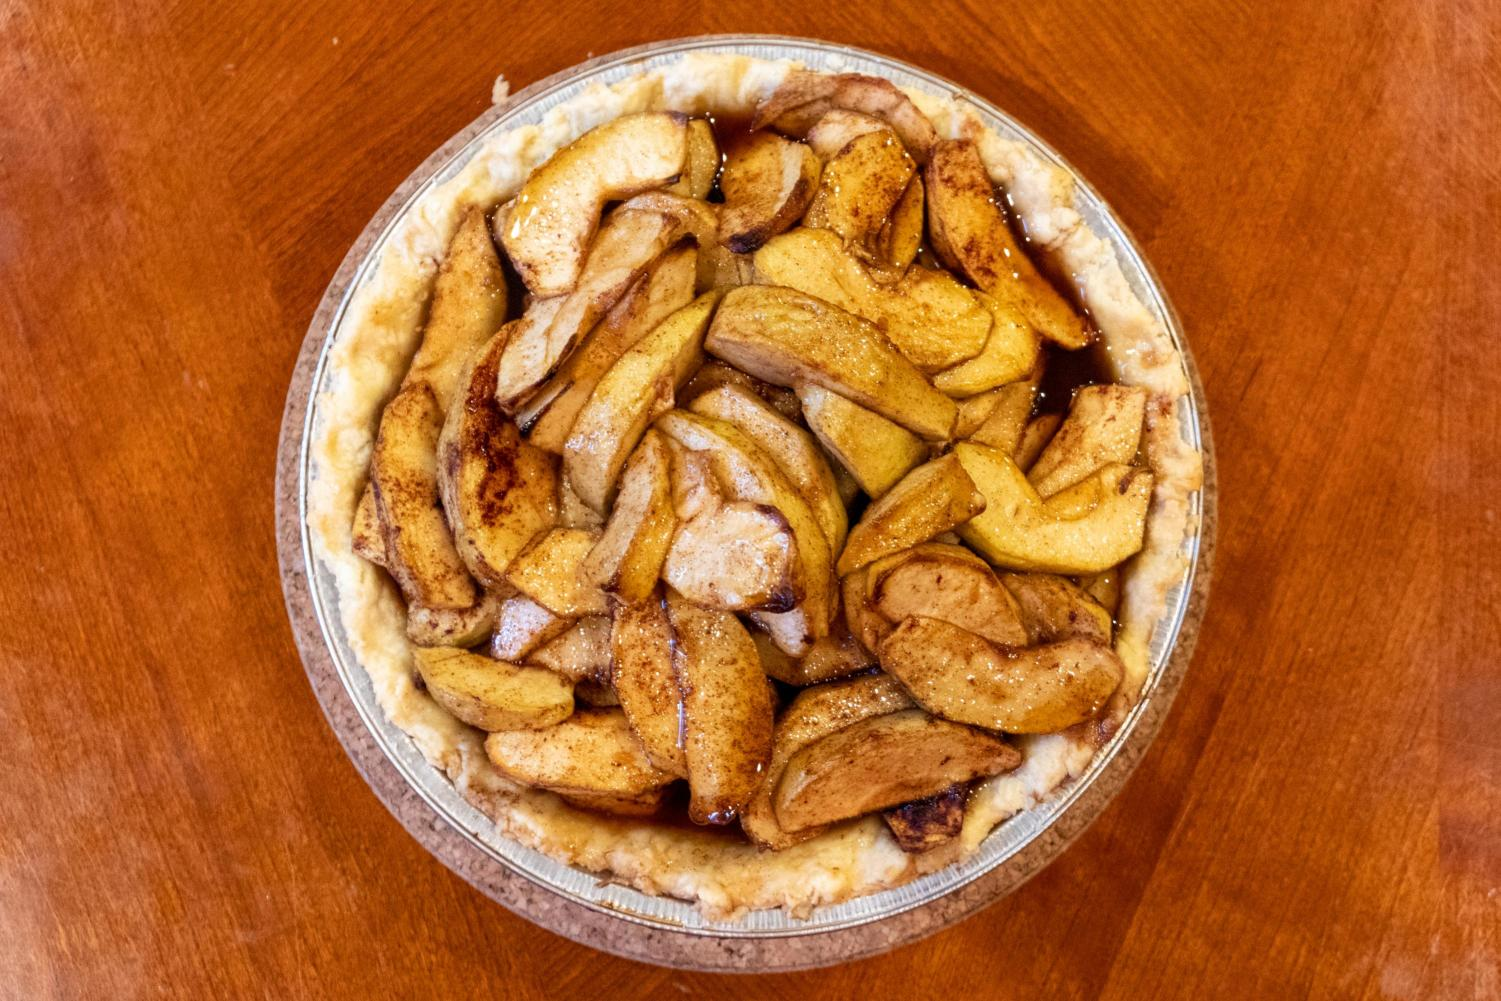 While the apple pie may look dry, the apples are full of moisture, which complement nicely to the flaky pie crust. If you have any vegan friends, fear not! The apples by its own are delicious.